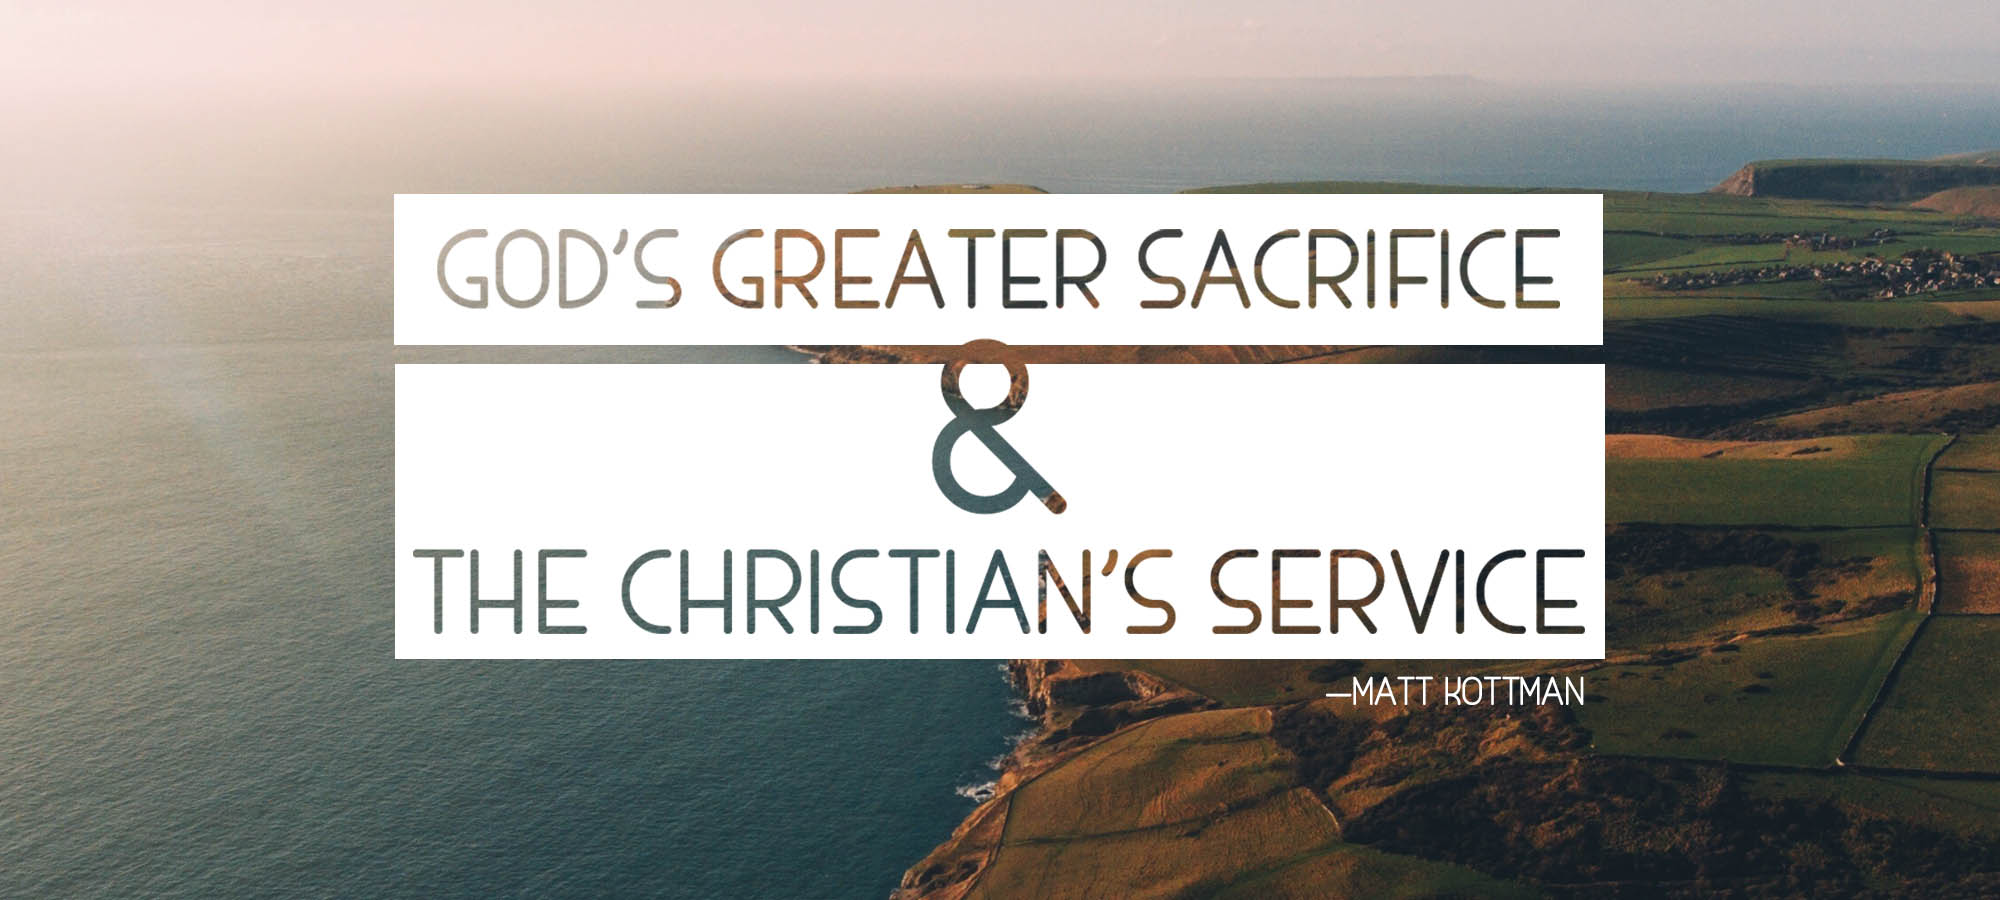 God's Greater Sacrifice & the Christian's Service